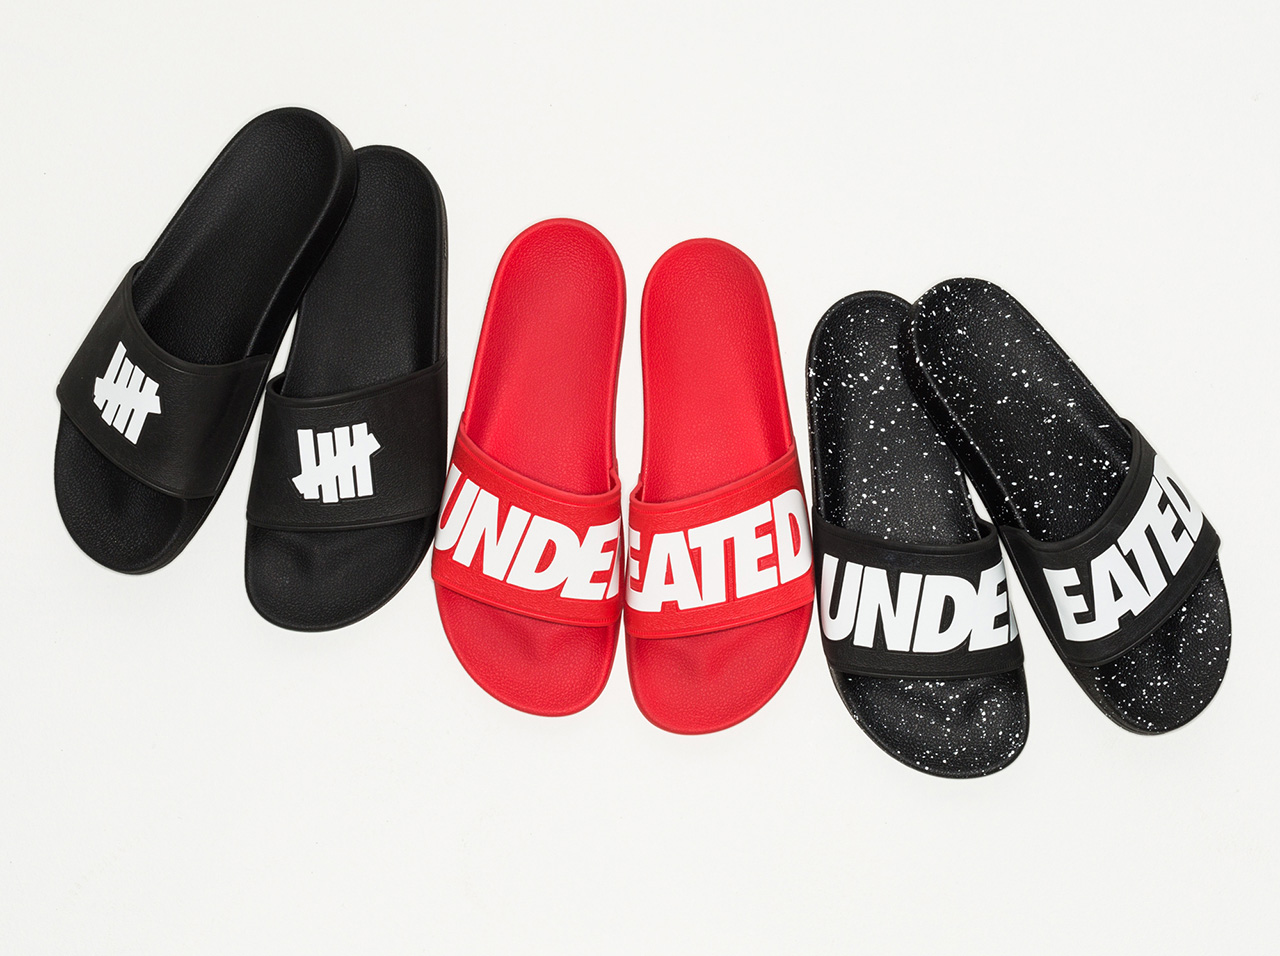 undefeated_undefeated_slide_five_strike_slide_und-sl-ubl_ured_ubks